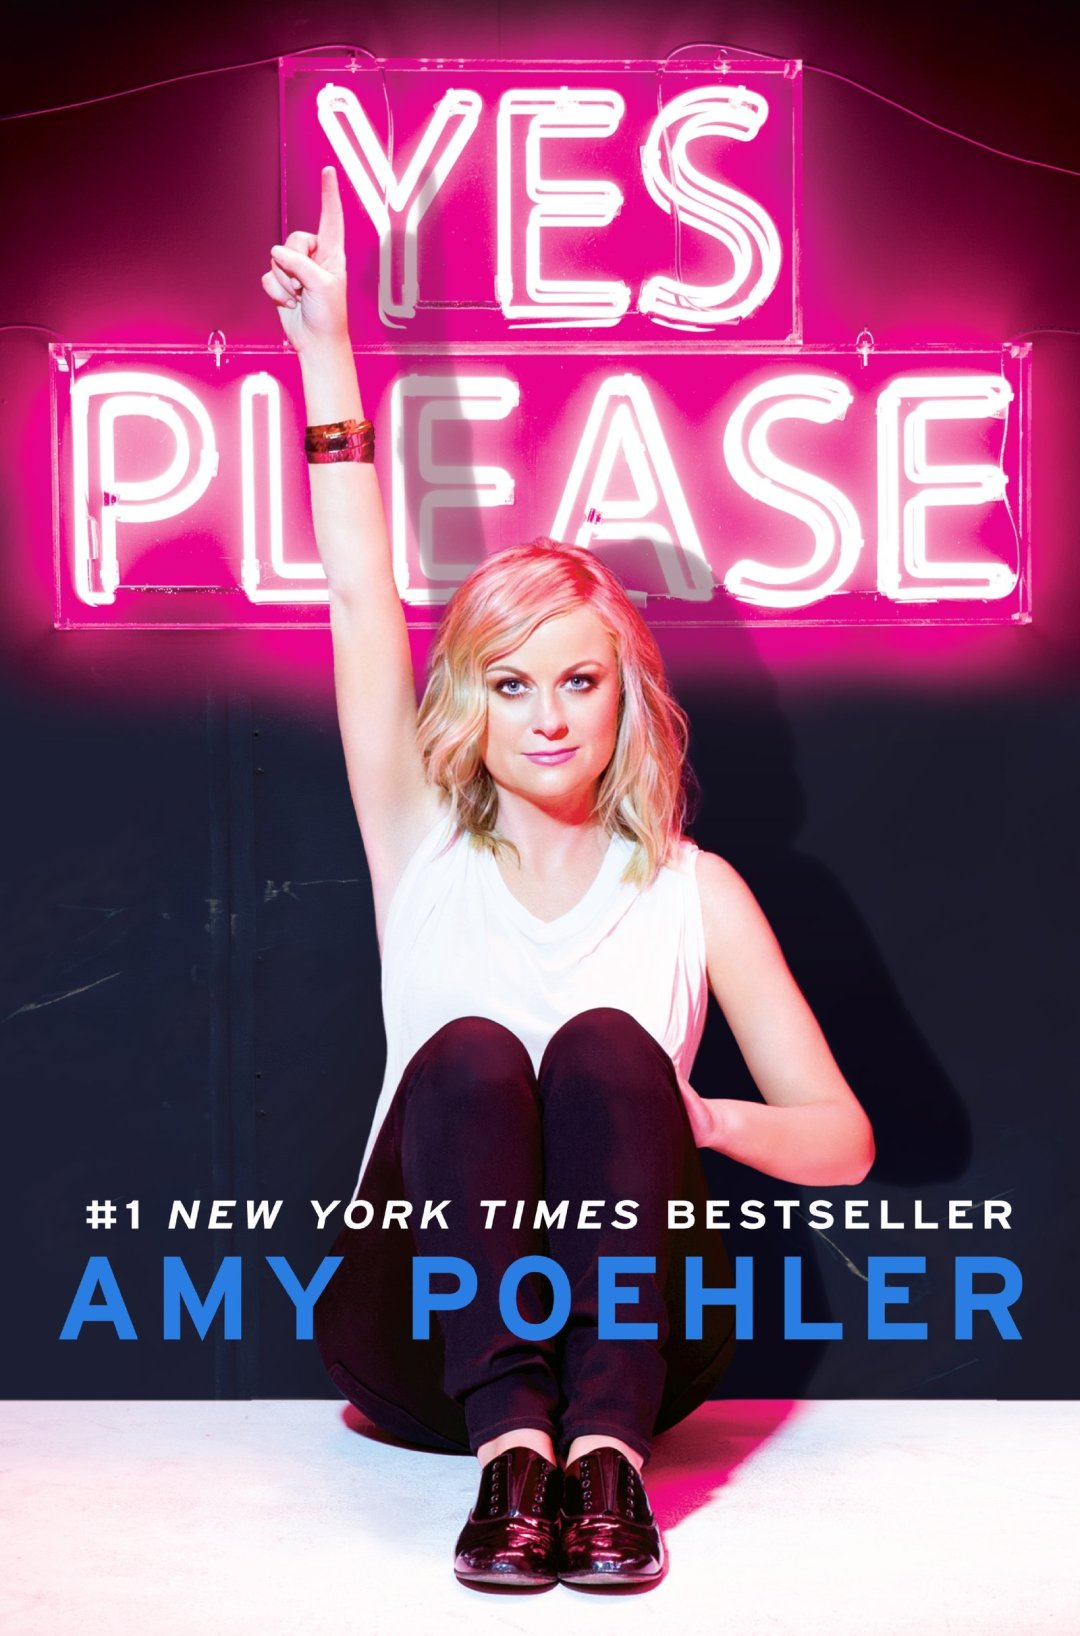 Female Biographies - Yes Please by Amy Poehler | Dutchie Love